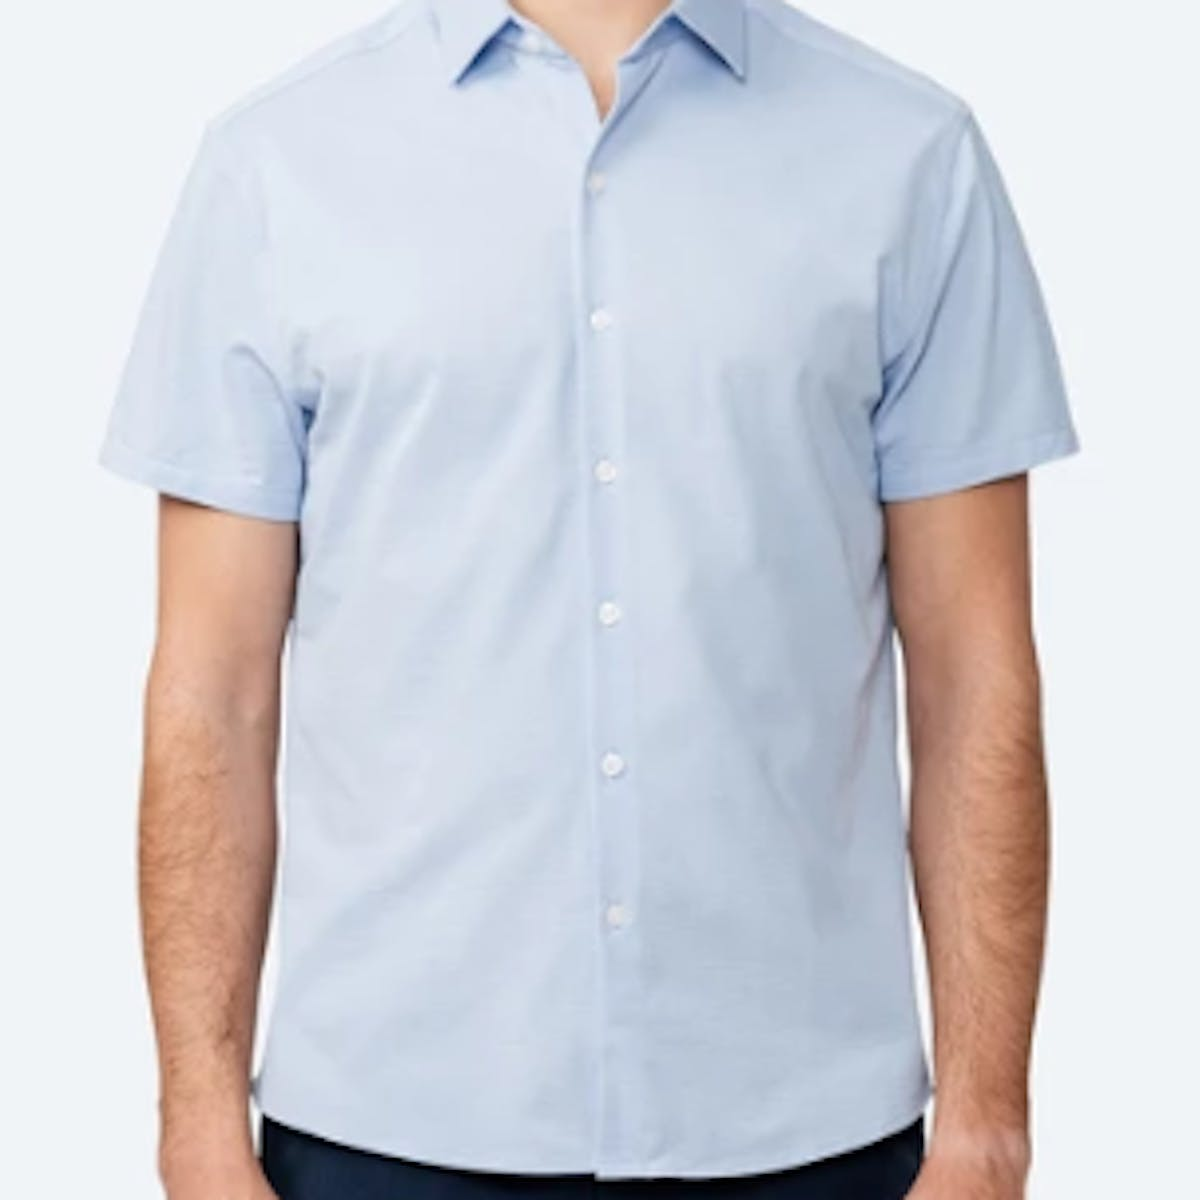 Moisture-Wicking Short-Sleeved Shirts You Can Totally Wear to the Office